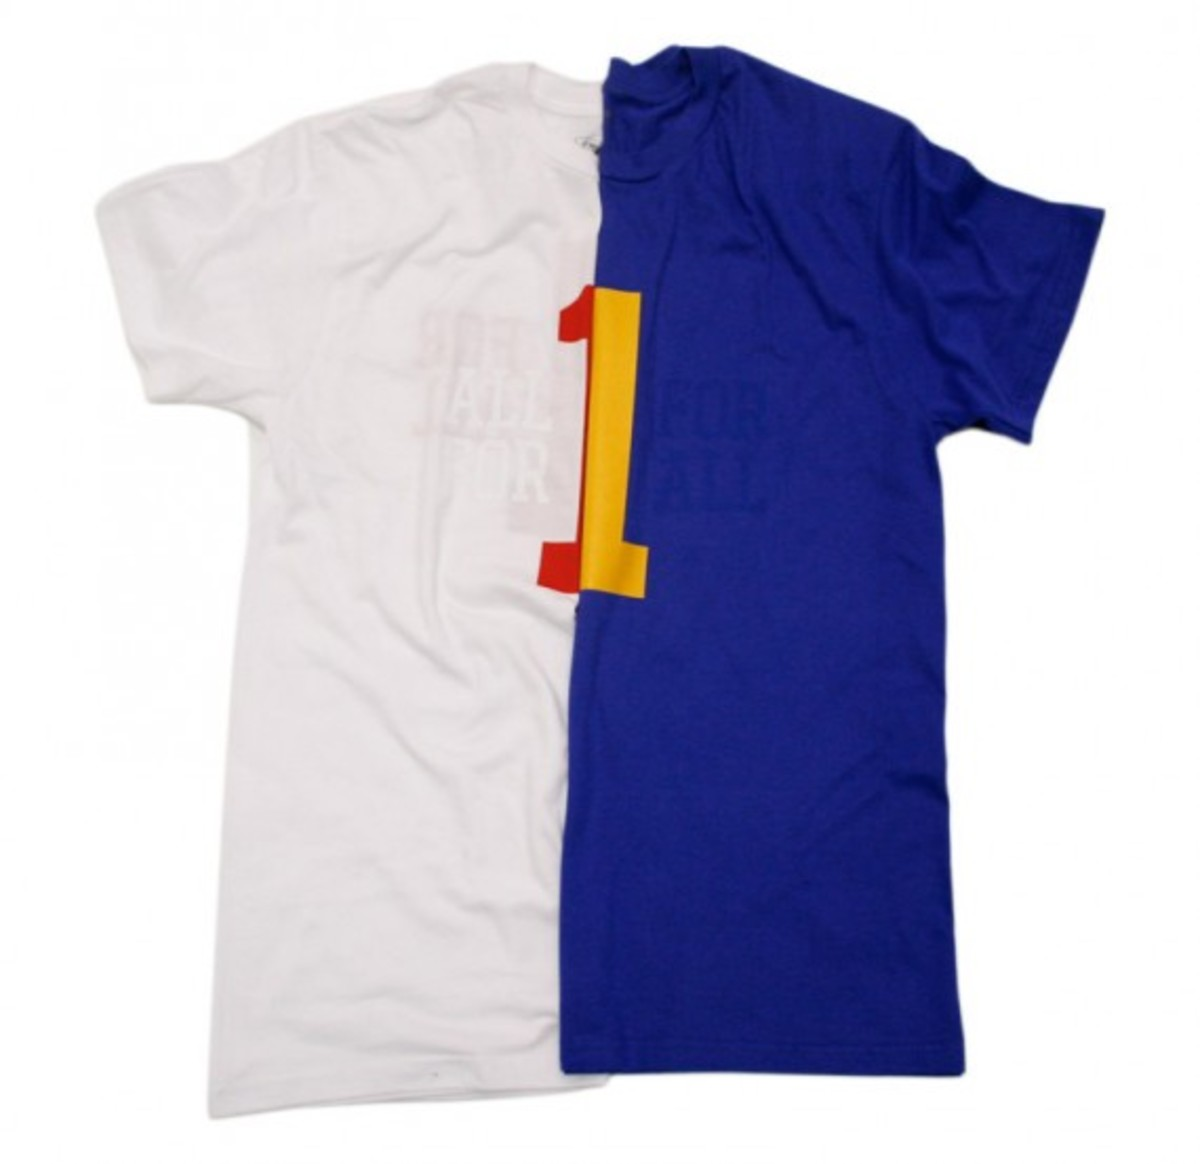 commonwealth-spring-summer-2011-tees-2